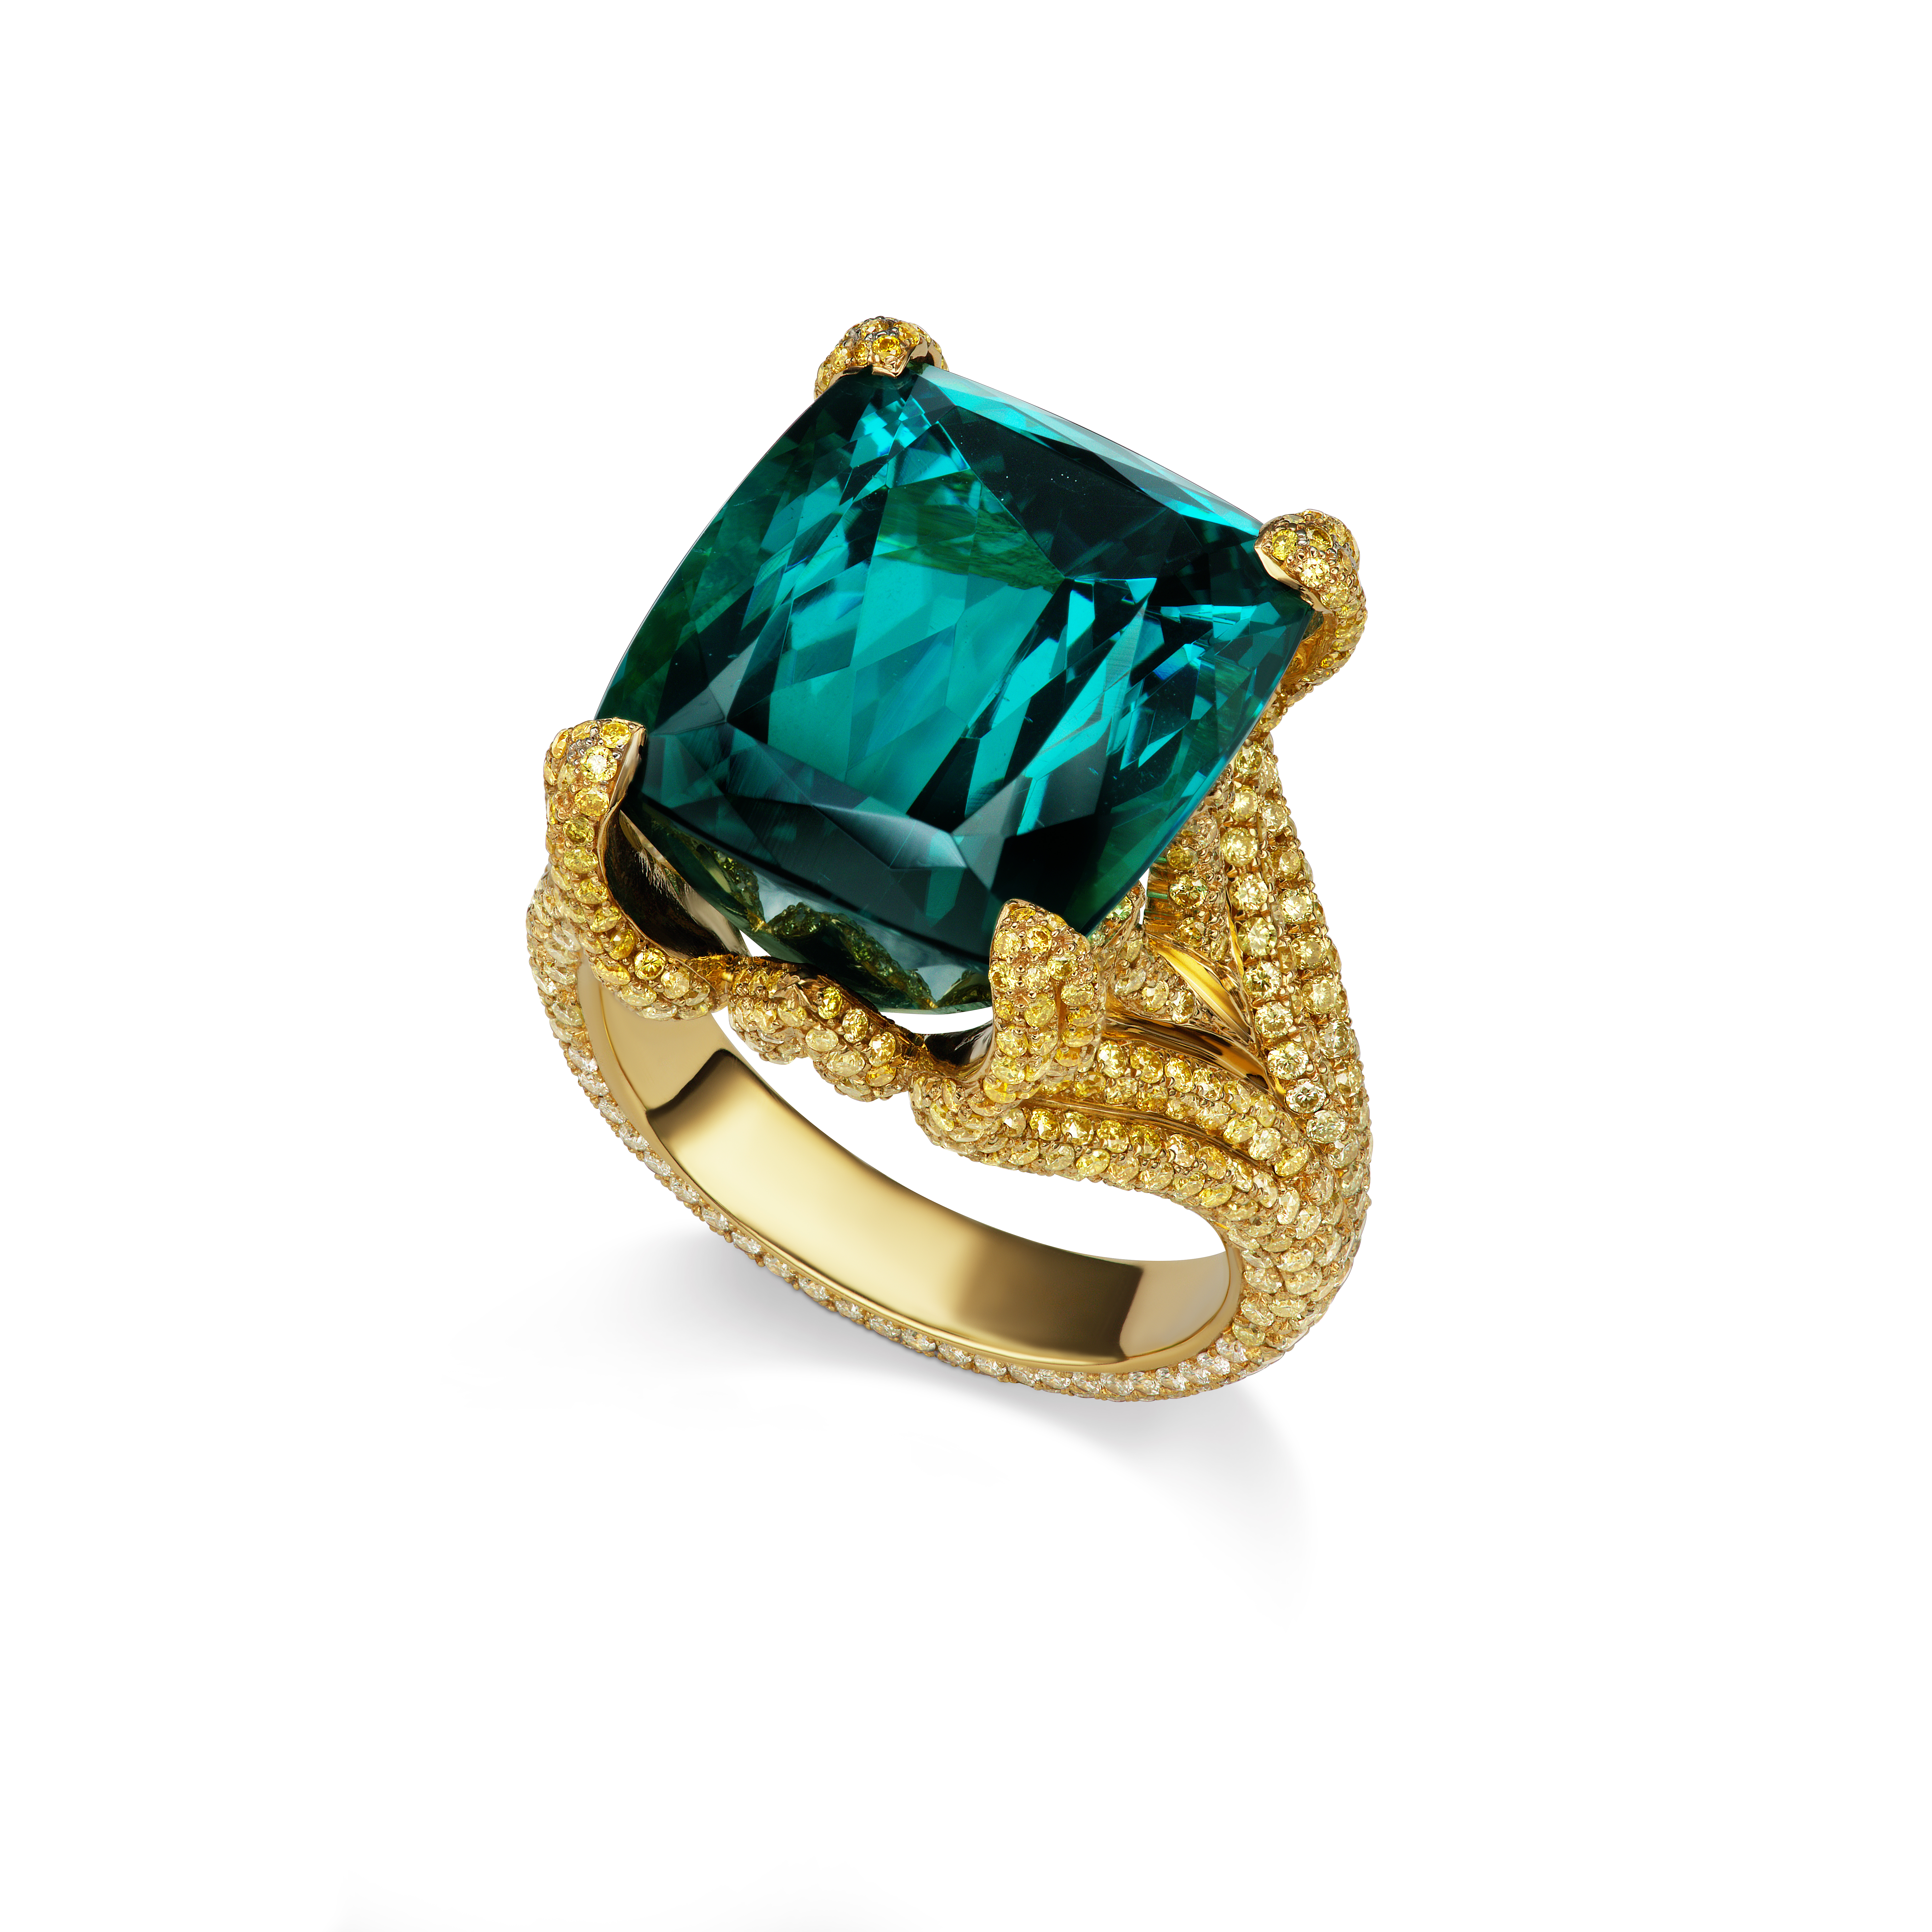 Alexia Connellan Celebrates Hibernian Culture, and Family, with Jewels